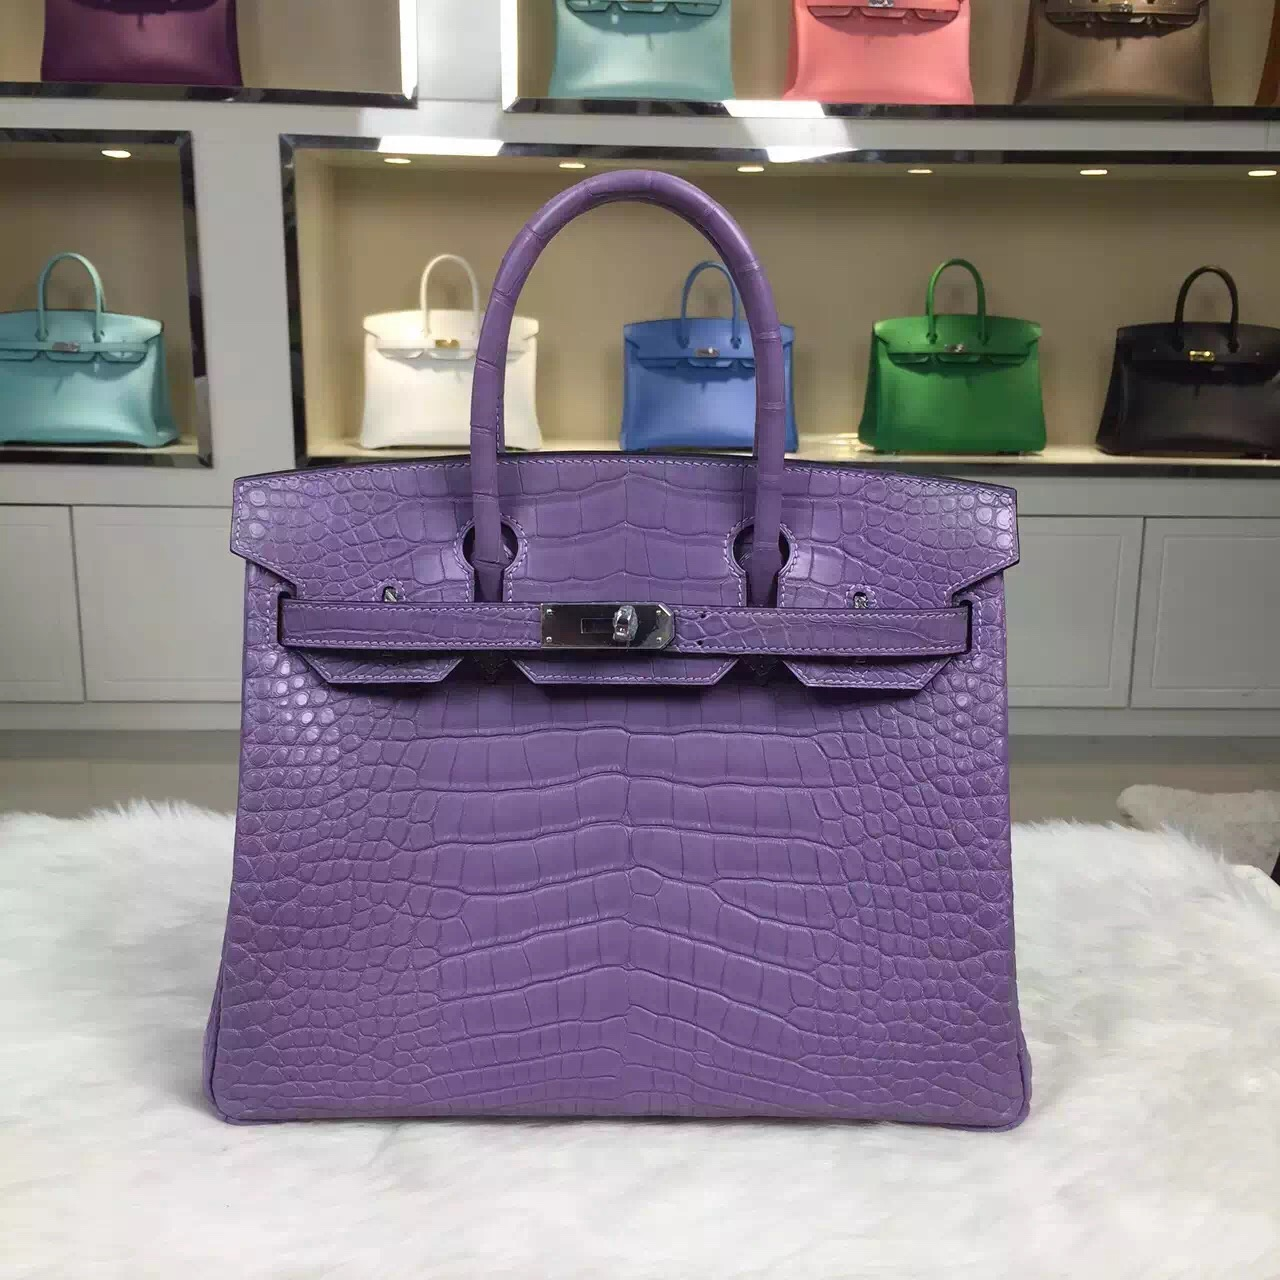 Custom-made Hermes Lavender Purple Crocodile Leather Birkin Bag 30cm Women's Tote Bag